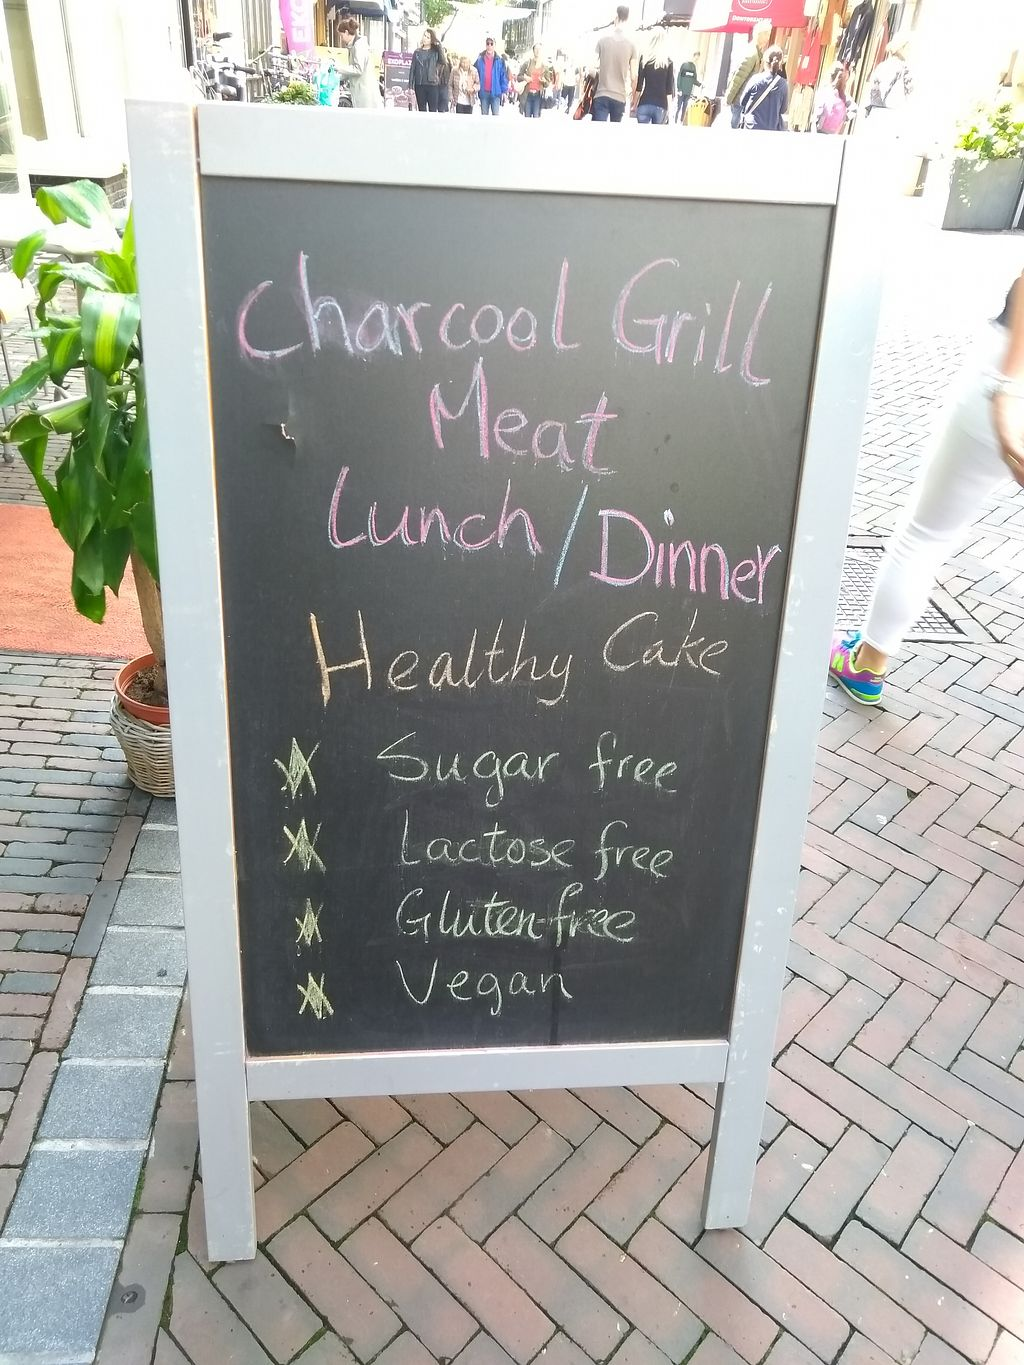 """Photo of Anna's Lunchroom  by <a href=""""/members/profile/thenaturalfusions"""">thenaturalfusions</a> <br/>outside chalkboard <br/> August 22, 2017  - <a href='/contact/abuse/image/90988/295813'>Report</a>"""